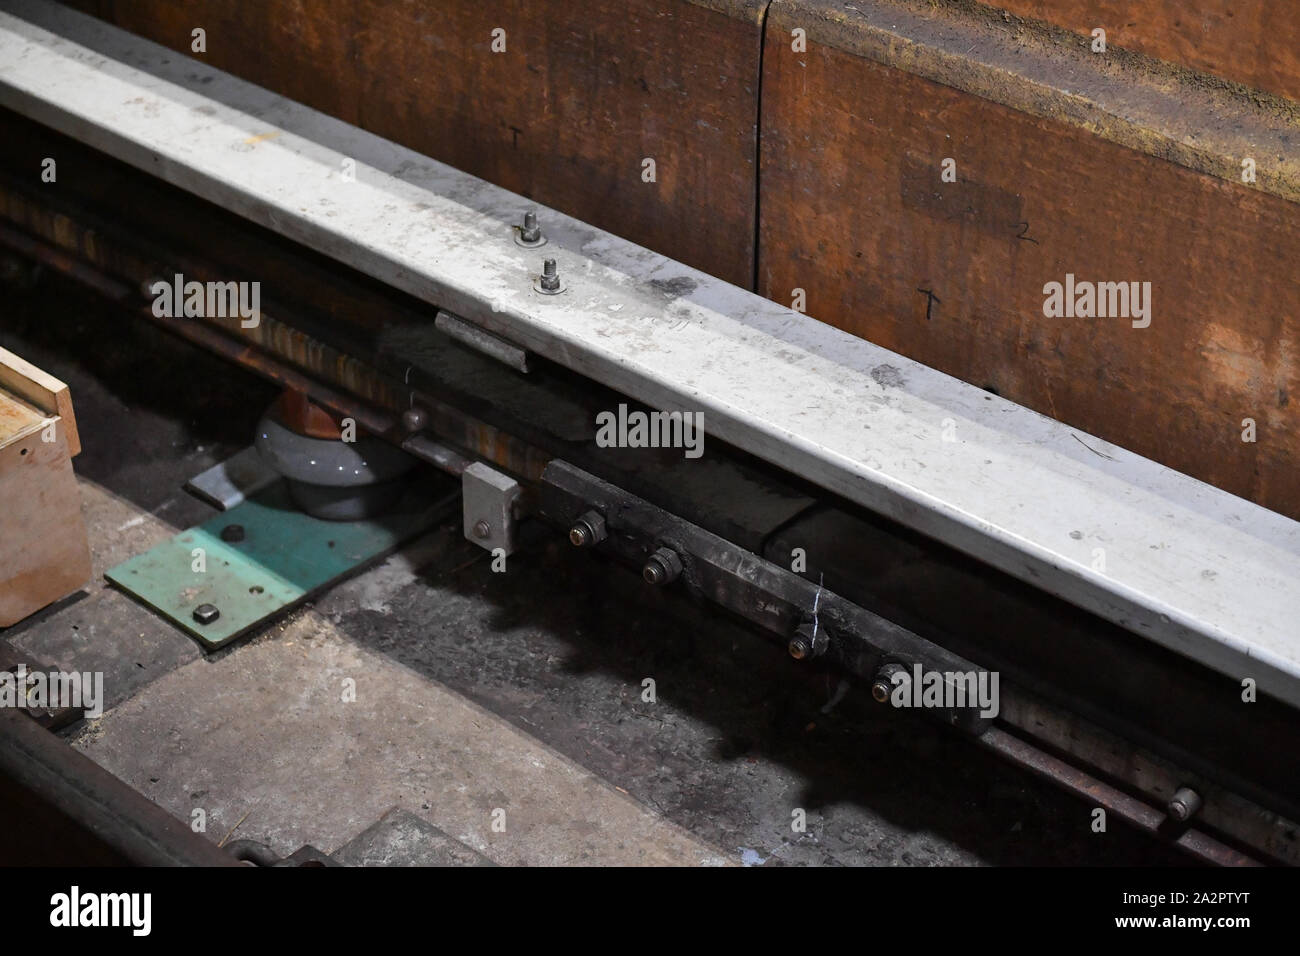 Governor Andrew Cuomo visit to the L Project tunnel rehabilitation, New York, USA - 29 Sep 2019 - The third rail is a method of providing electric pow Stock Photo